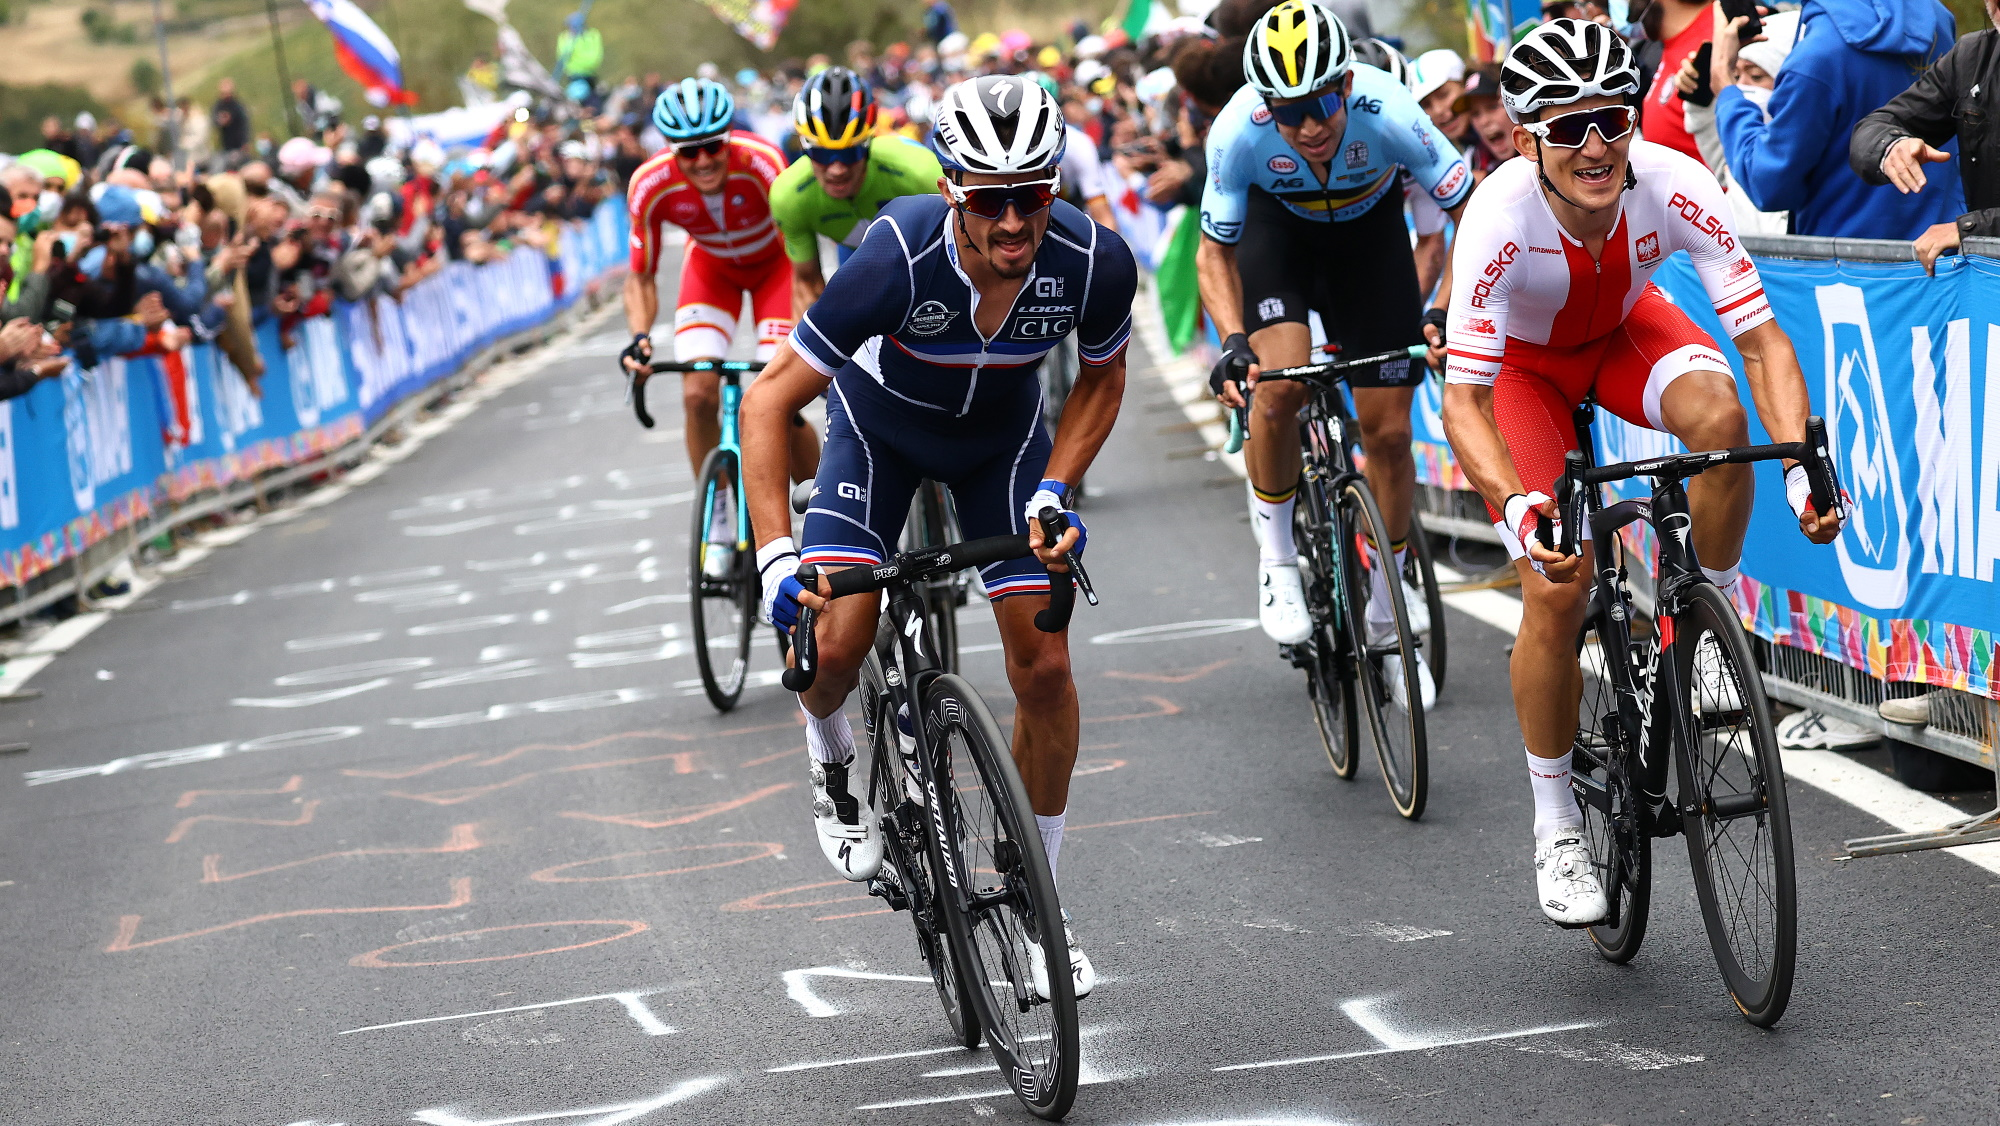 UCI Road World Championships 2021 free live streams: how to watch cycling online from anywhere